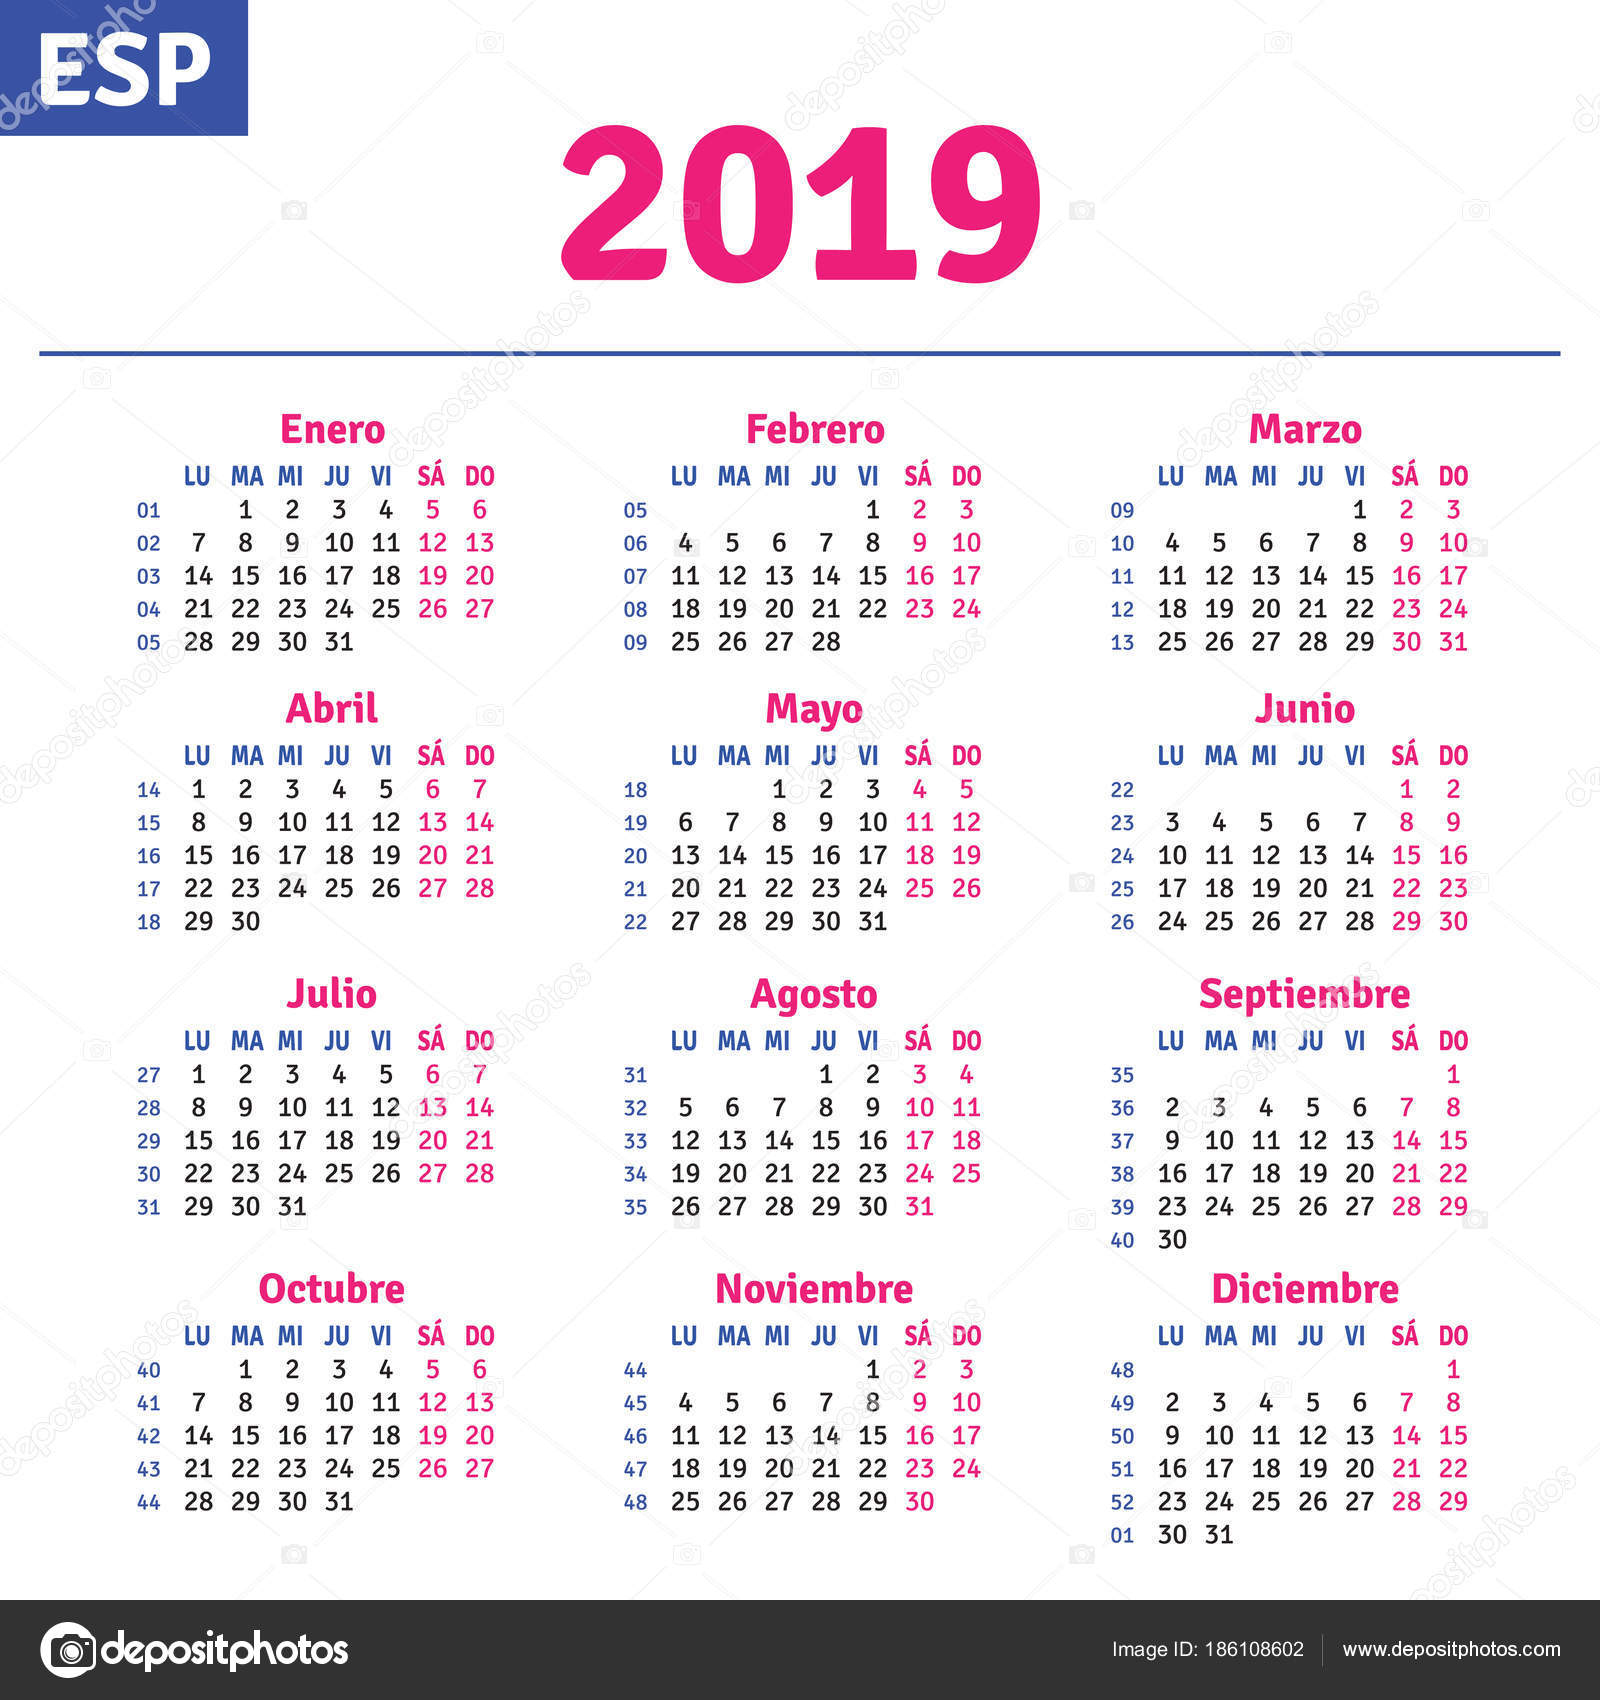 Calendario Julio 2019 Vector.Spanish Calendar 2019 Stock Vector C Rustamank 186108602